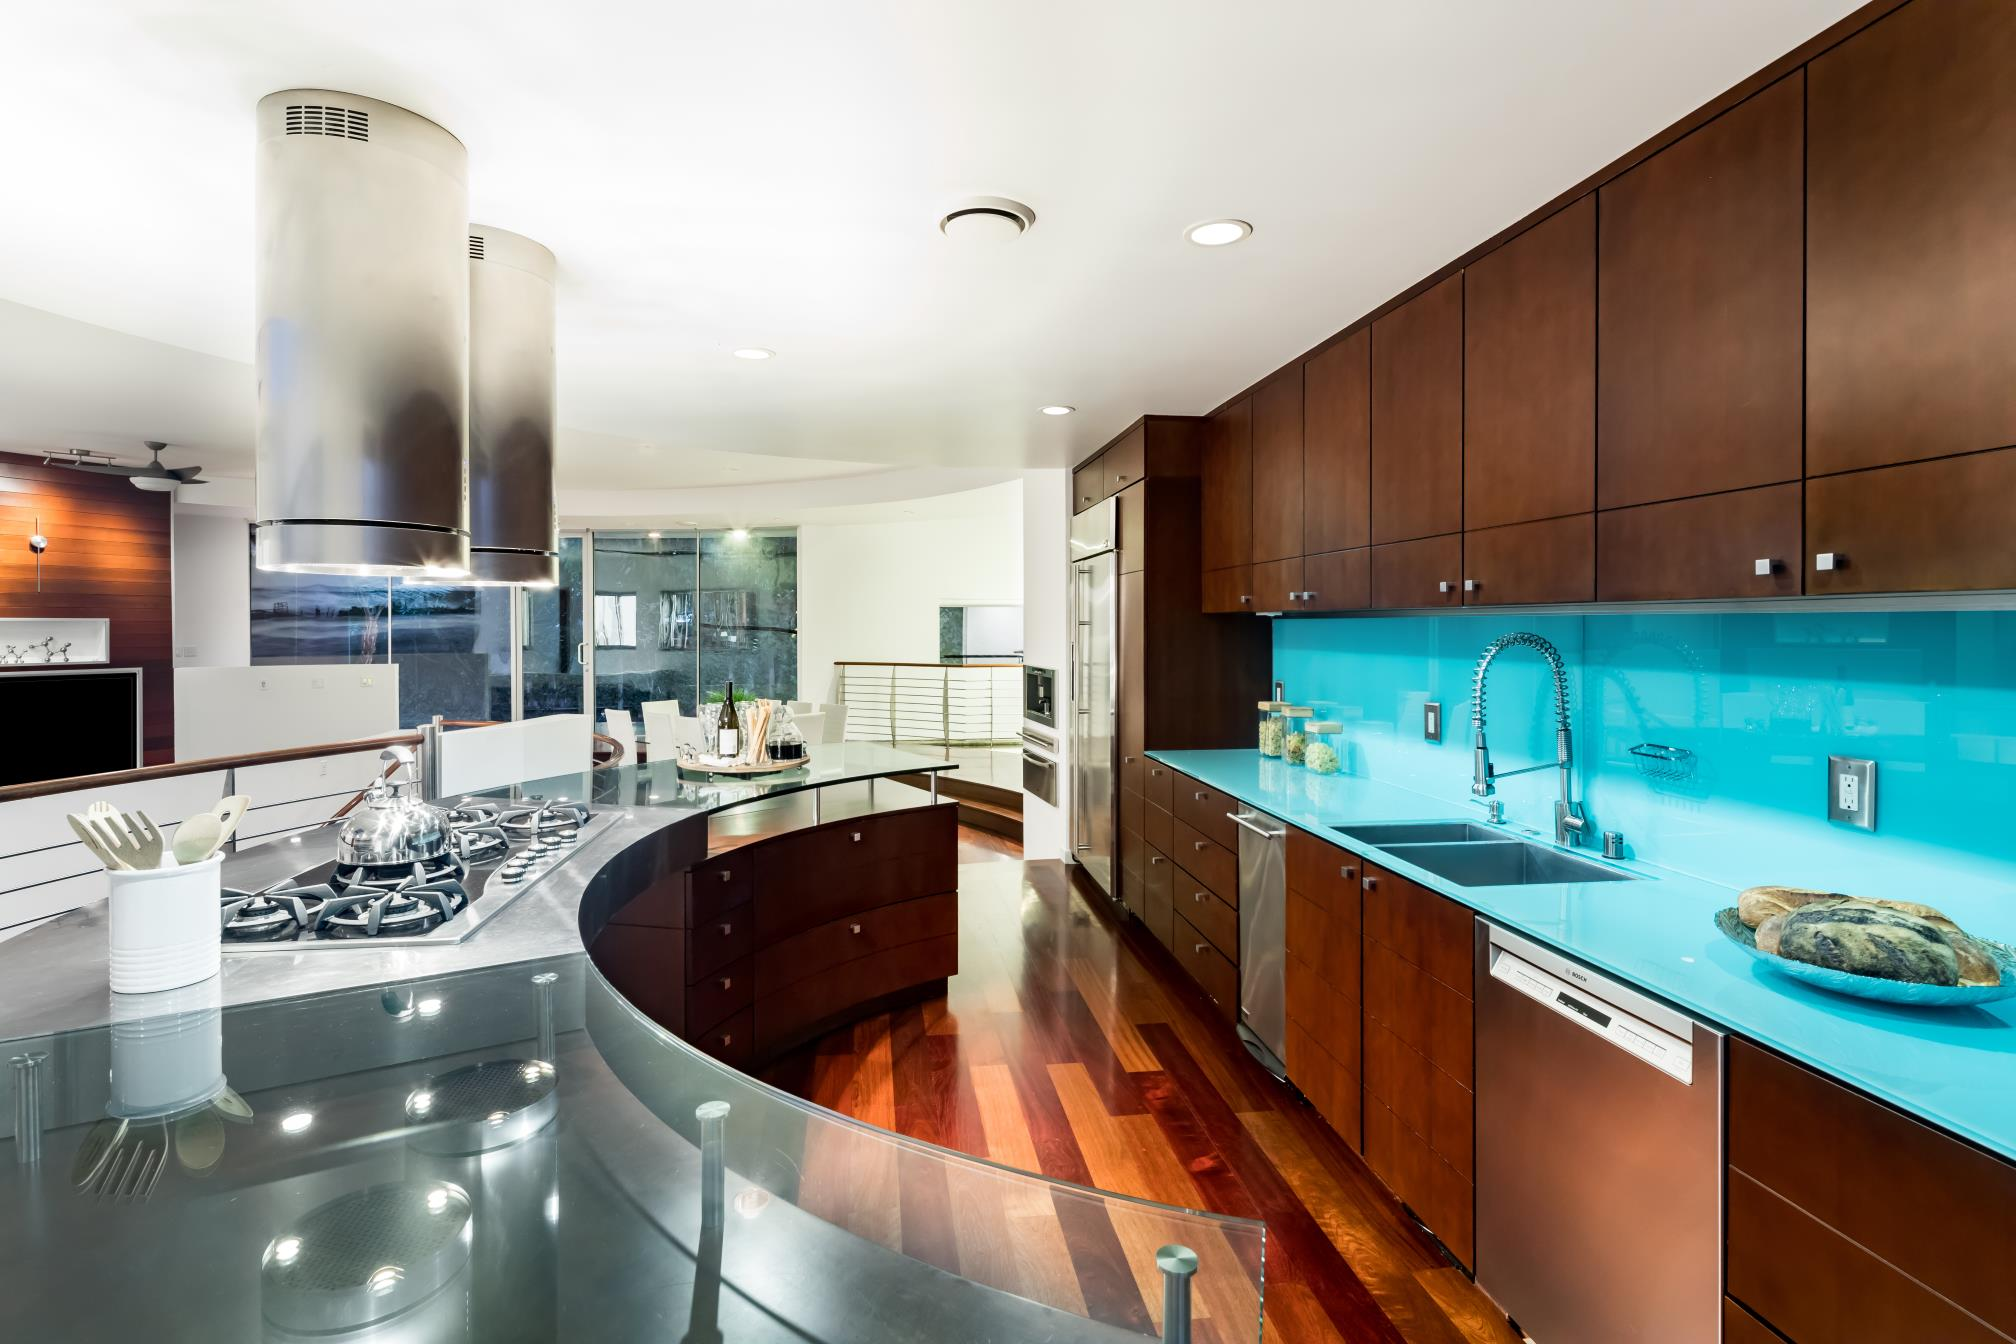 Luxurious kitchen, interior design, architect work,Los Altos